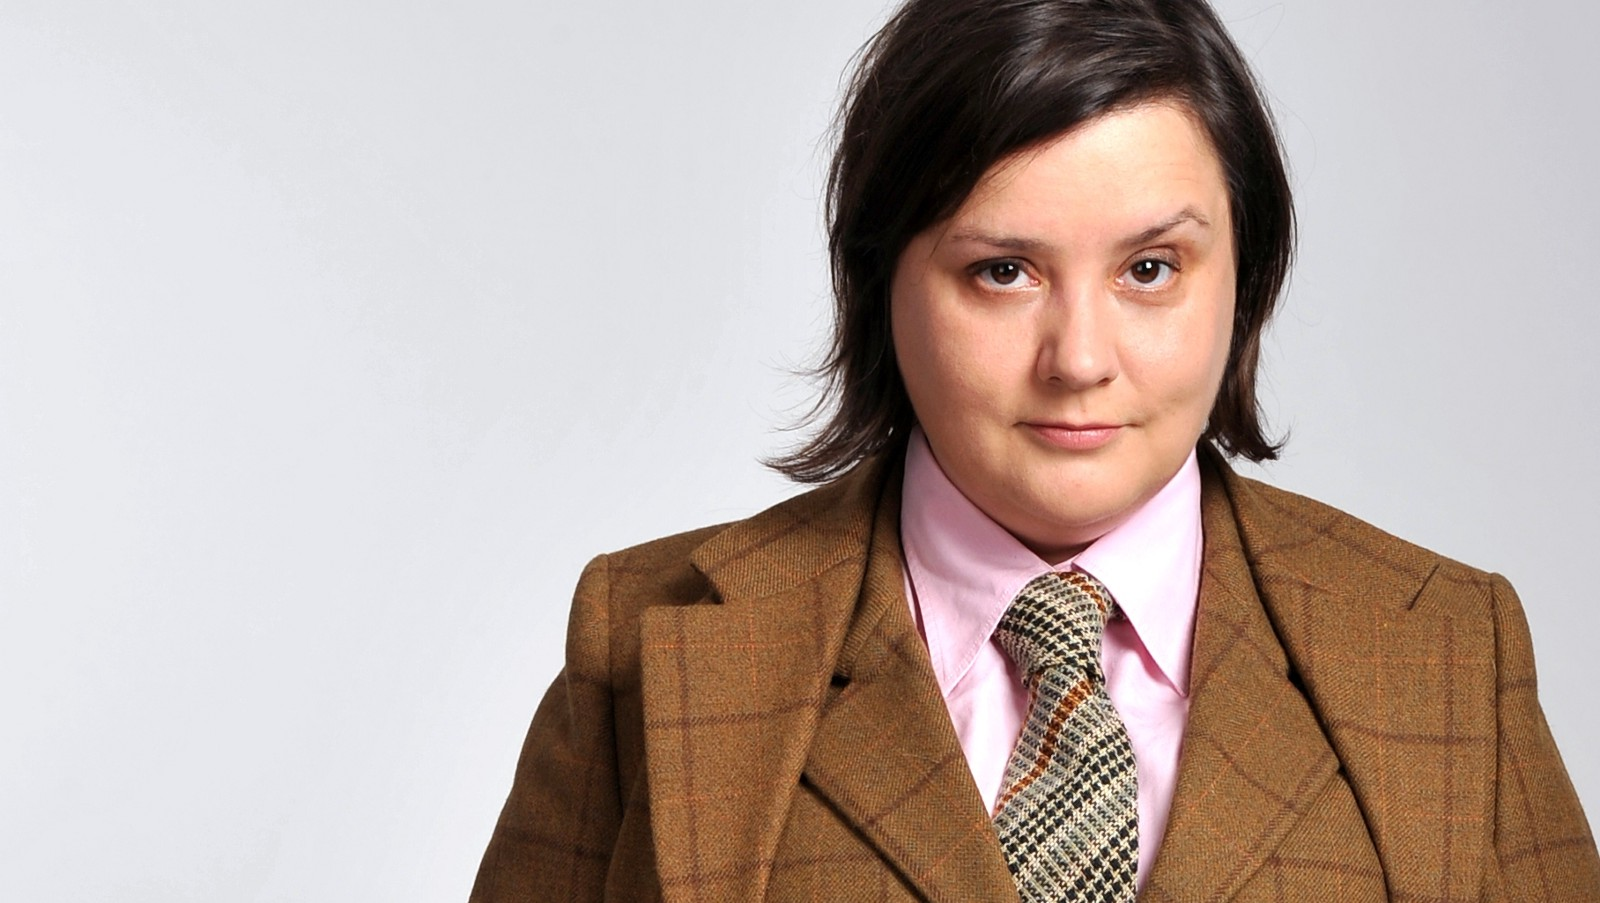 Susan Calman Recalls The Moment She Was Threatened With A Gun forecast